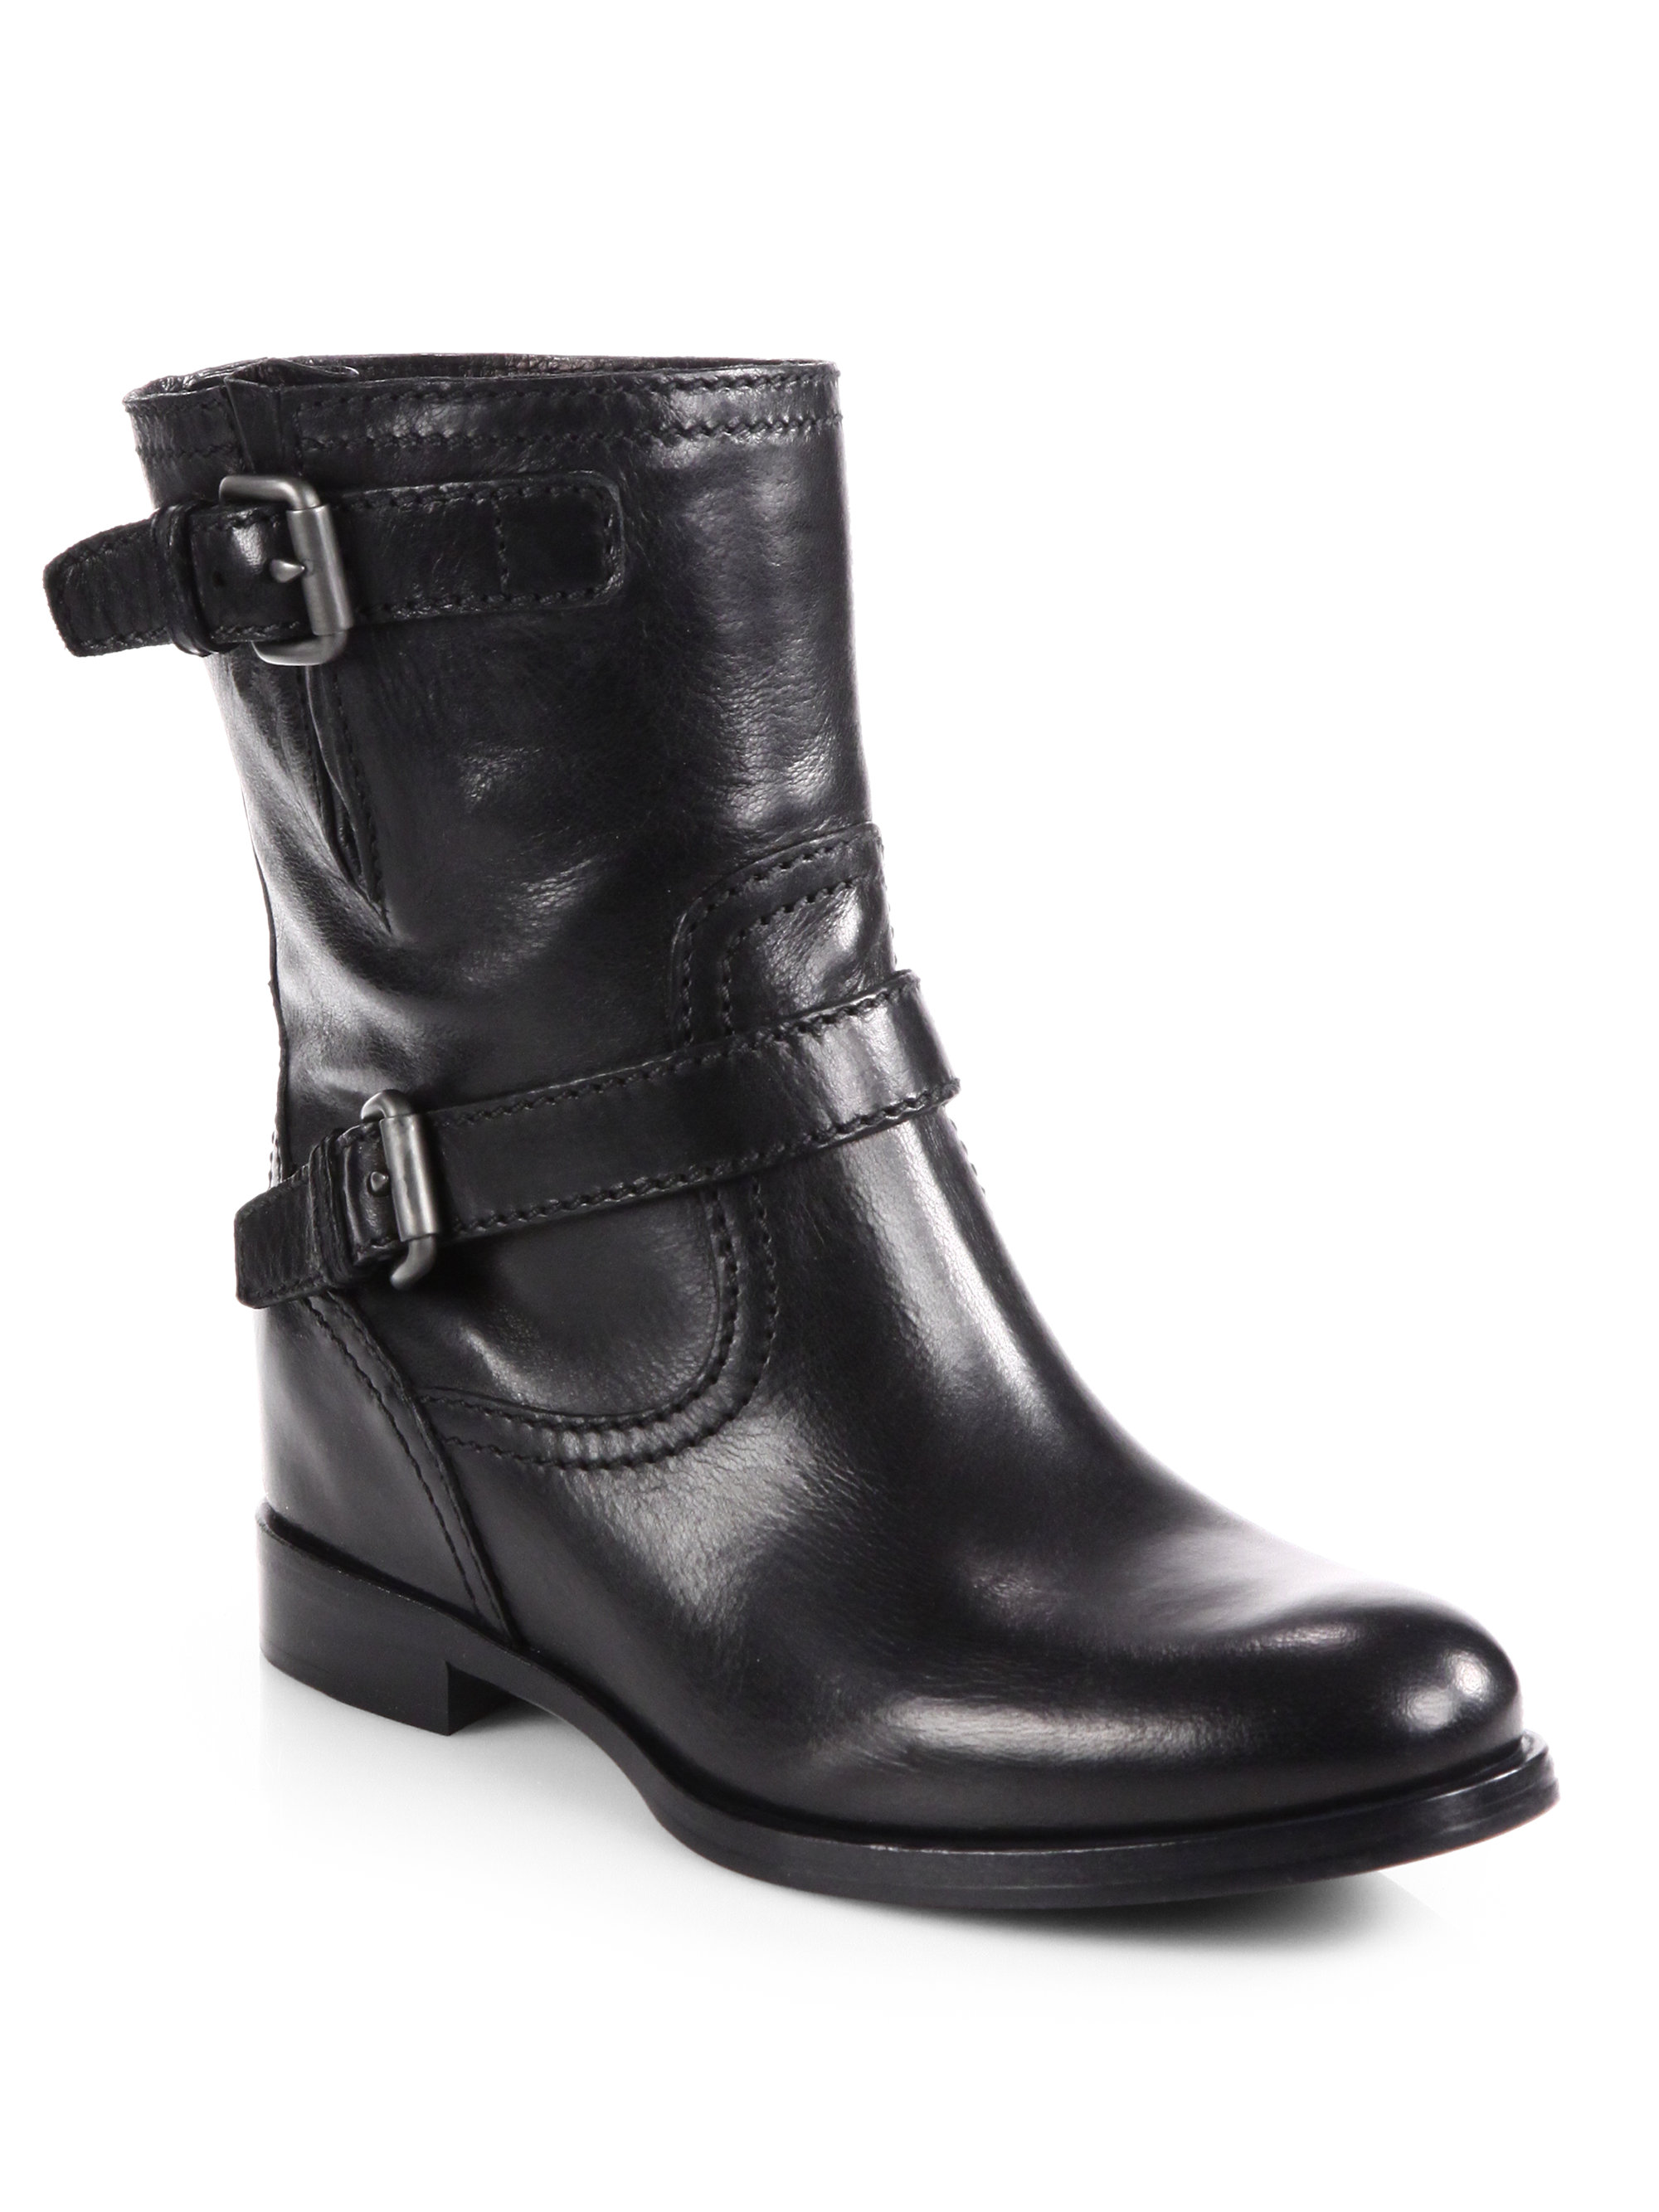 Lyst Prada Leather Double Buckle Motorcycle Boots In Black